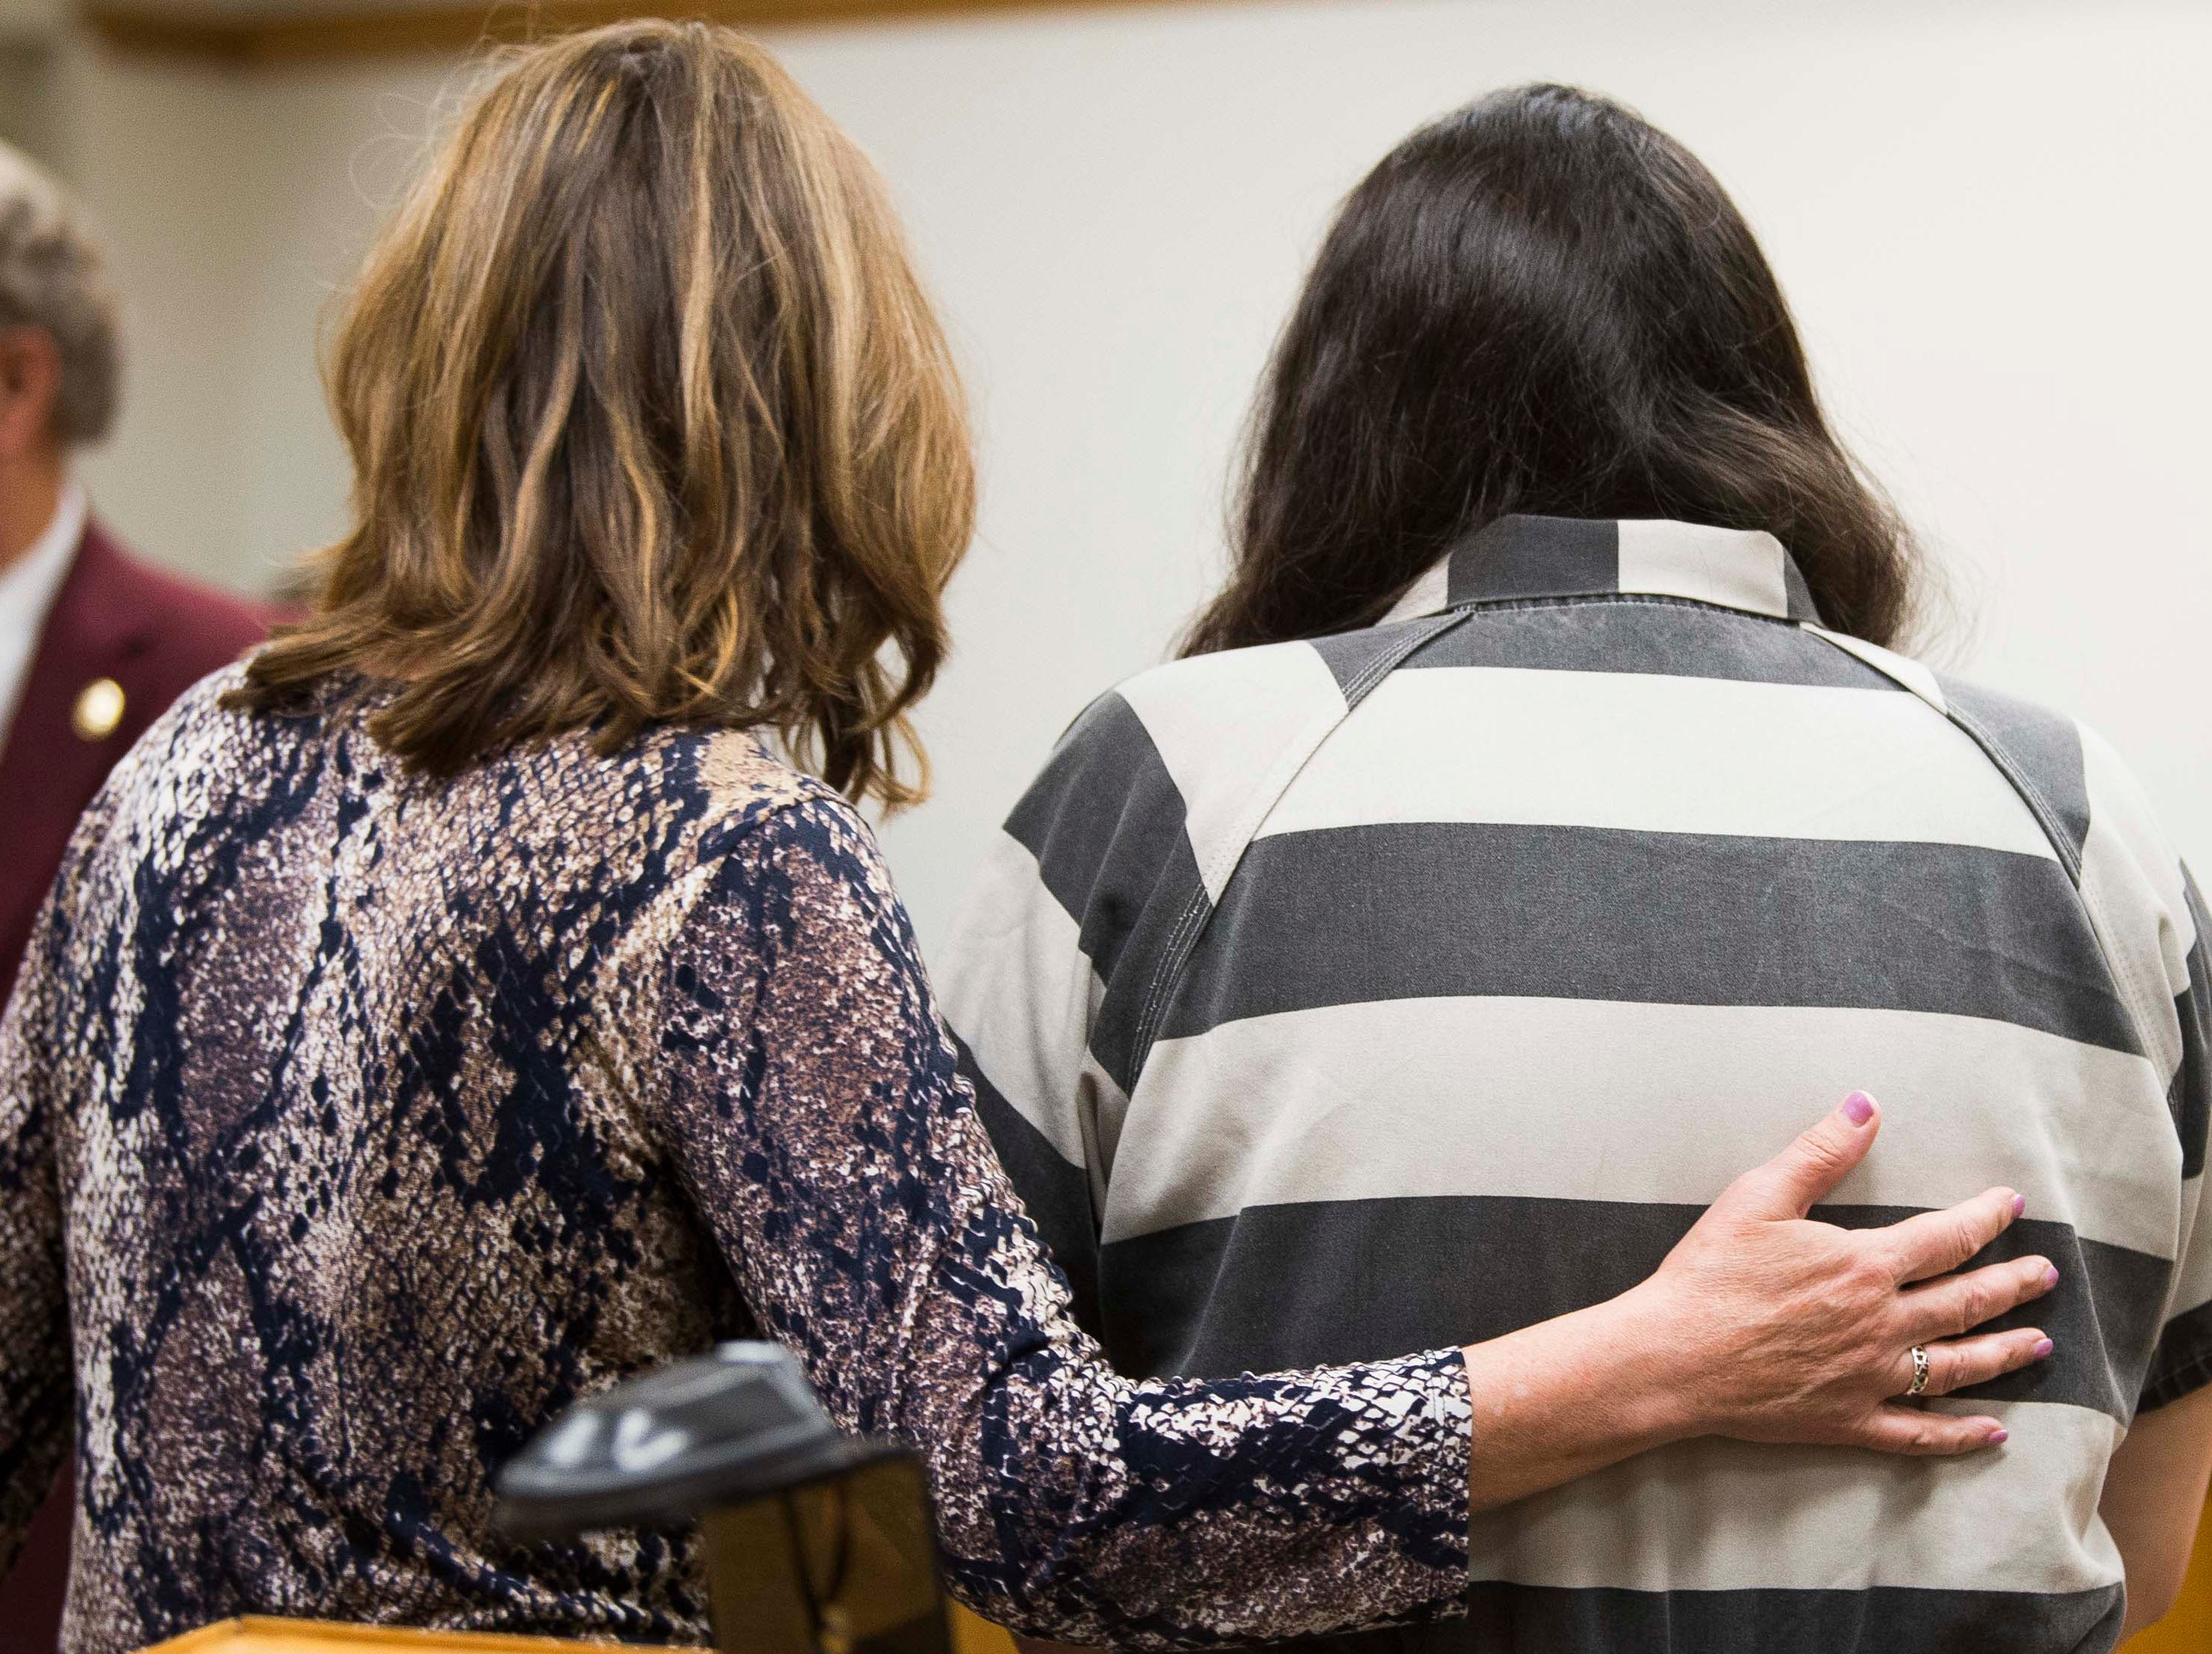 At left attorney Stacey D. Nordquist walks out of the court room with client Bethanie A. Carriker, who is arraigned before Judge Robert L. Headrick in Blount County General Sessions Court in Maryville, Wednesday, May 8, 2019. Carriker faces two counts of aggravated child neglect after a bathtub drowning left her toddler daughter dead and a second, newborn girl in critical condition.